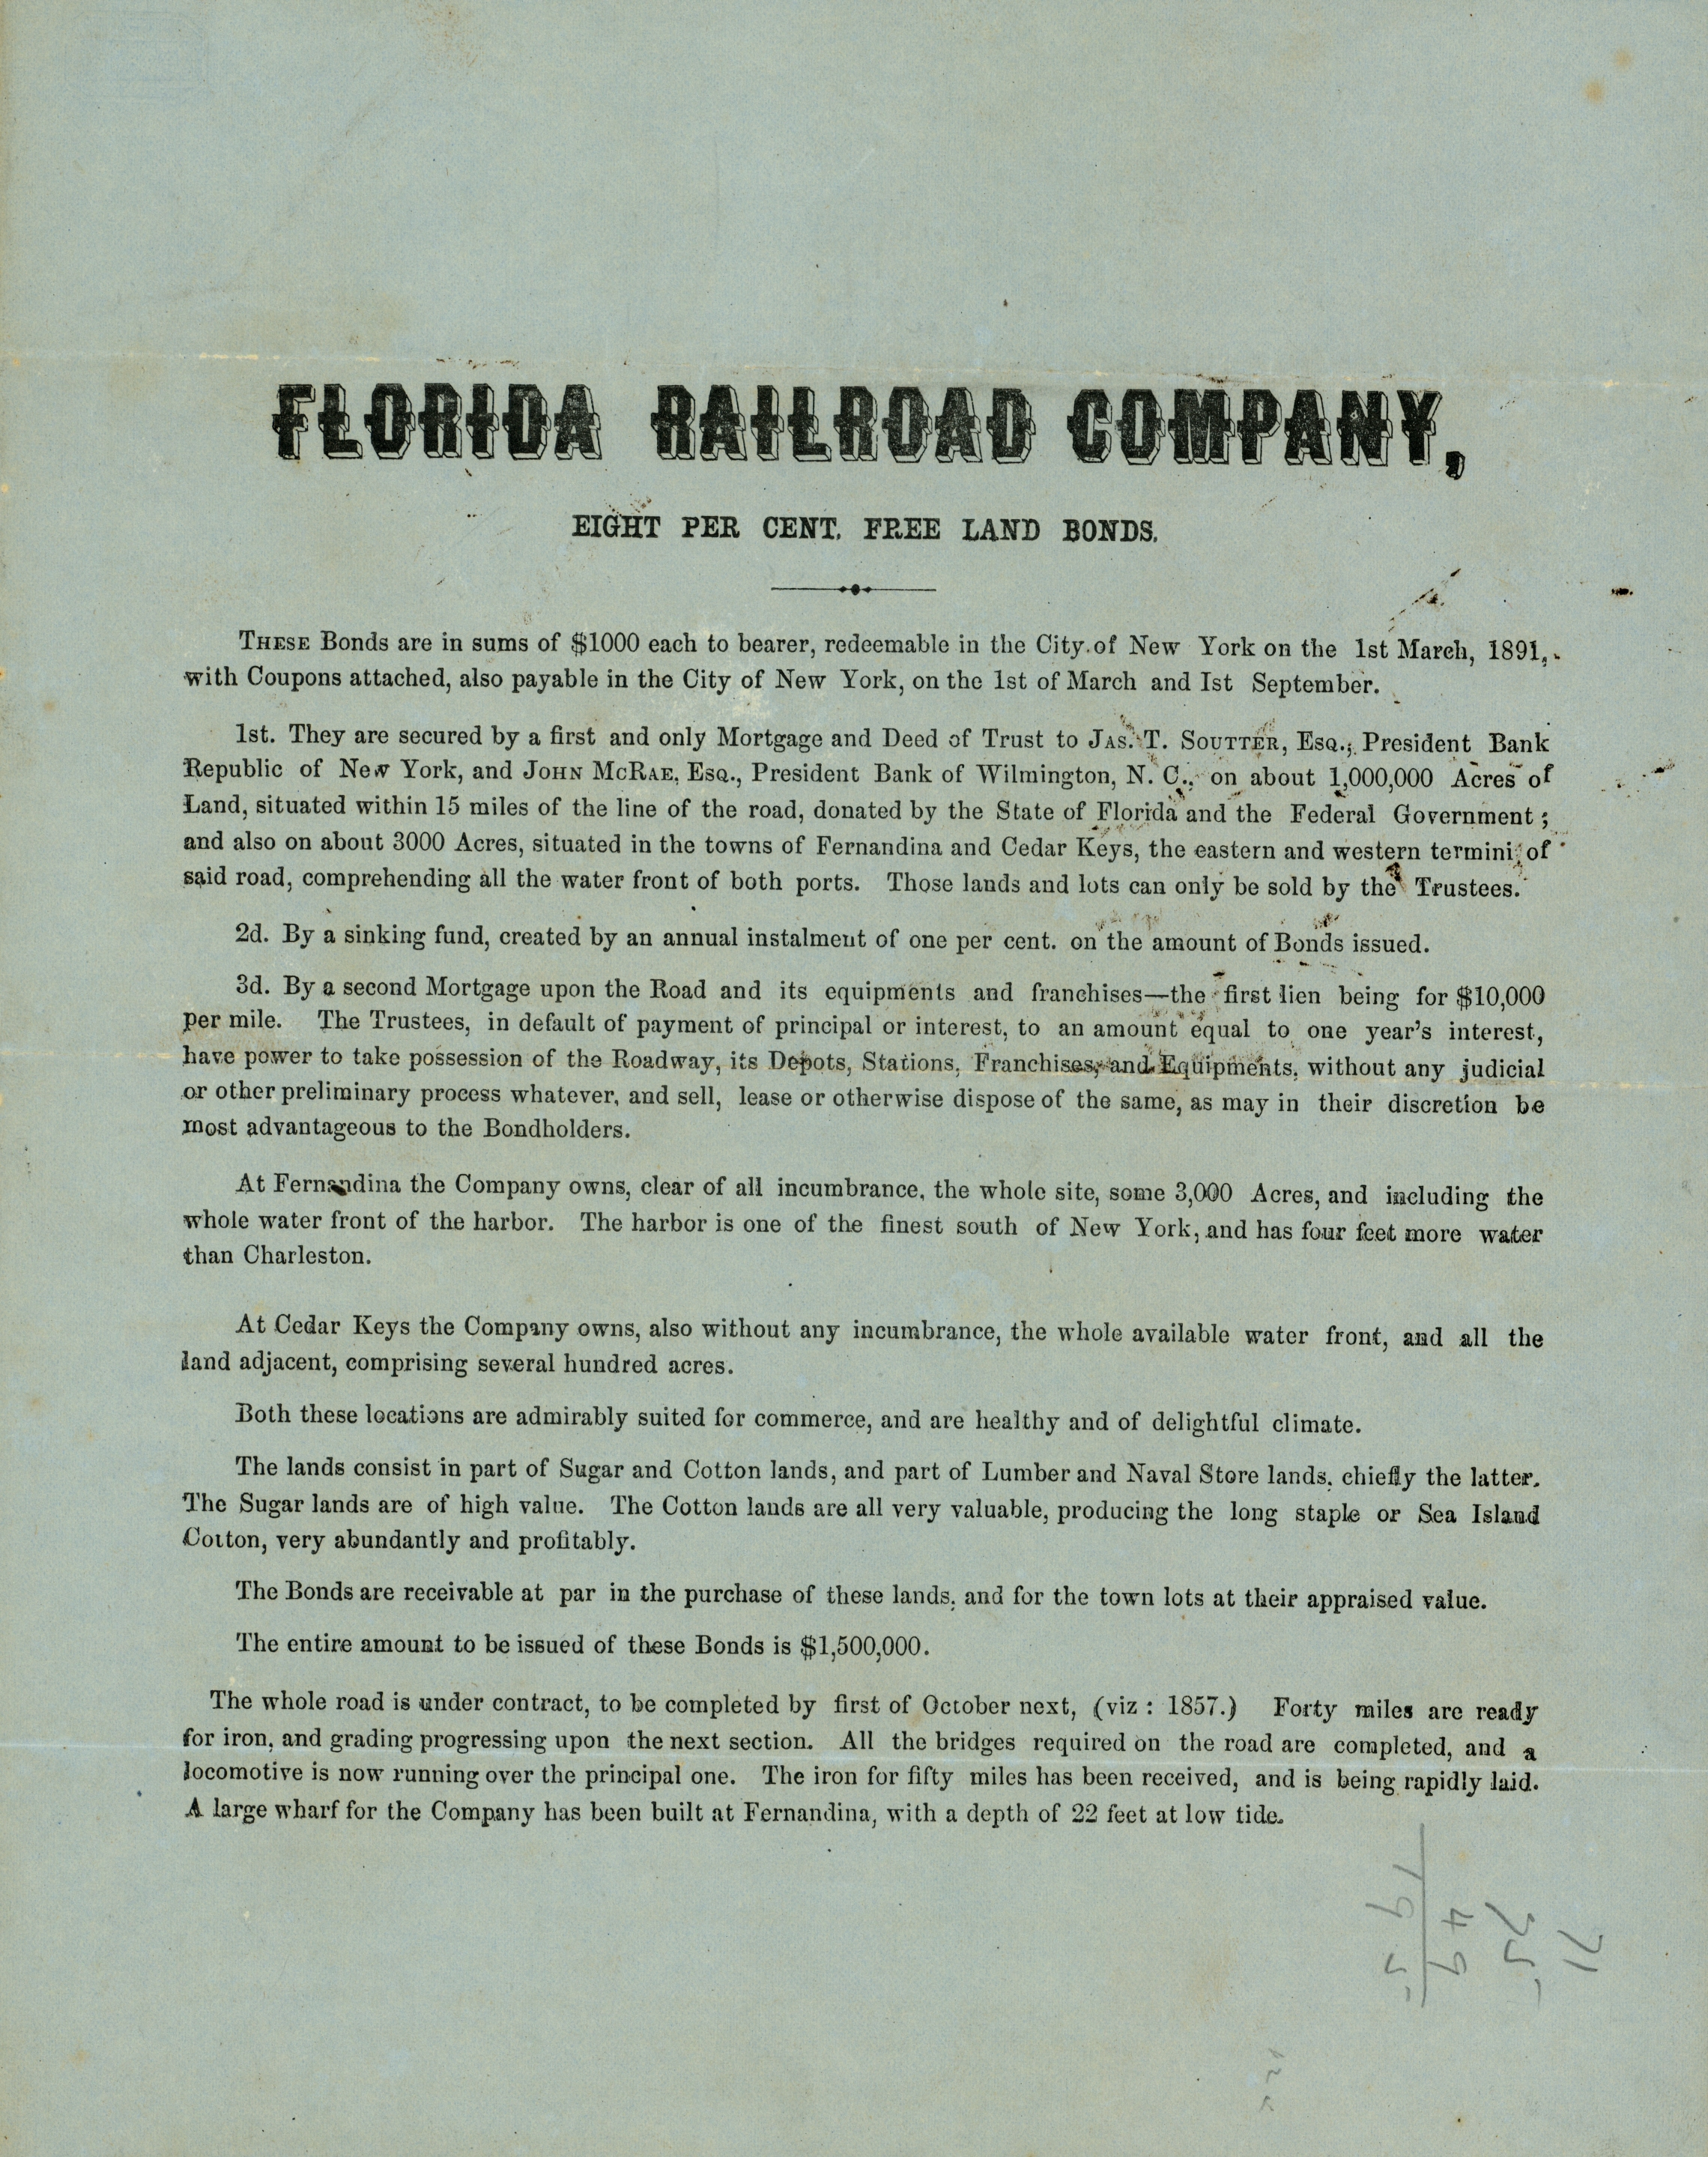 Florida Railroad Company, eight per cent free land bonds.